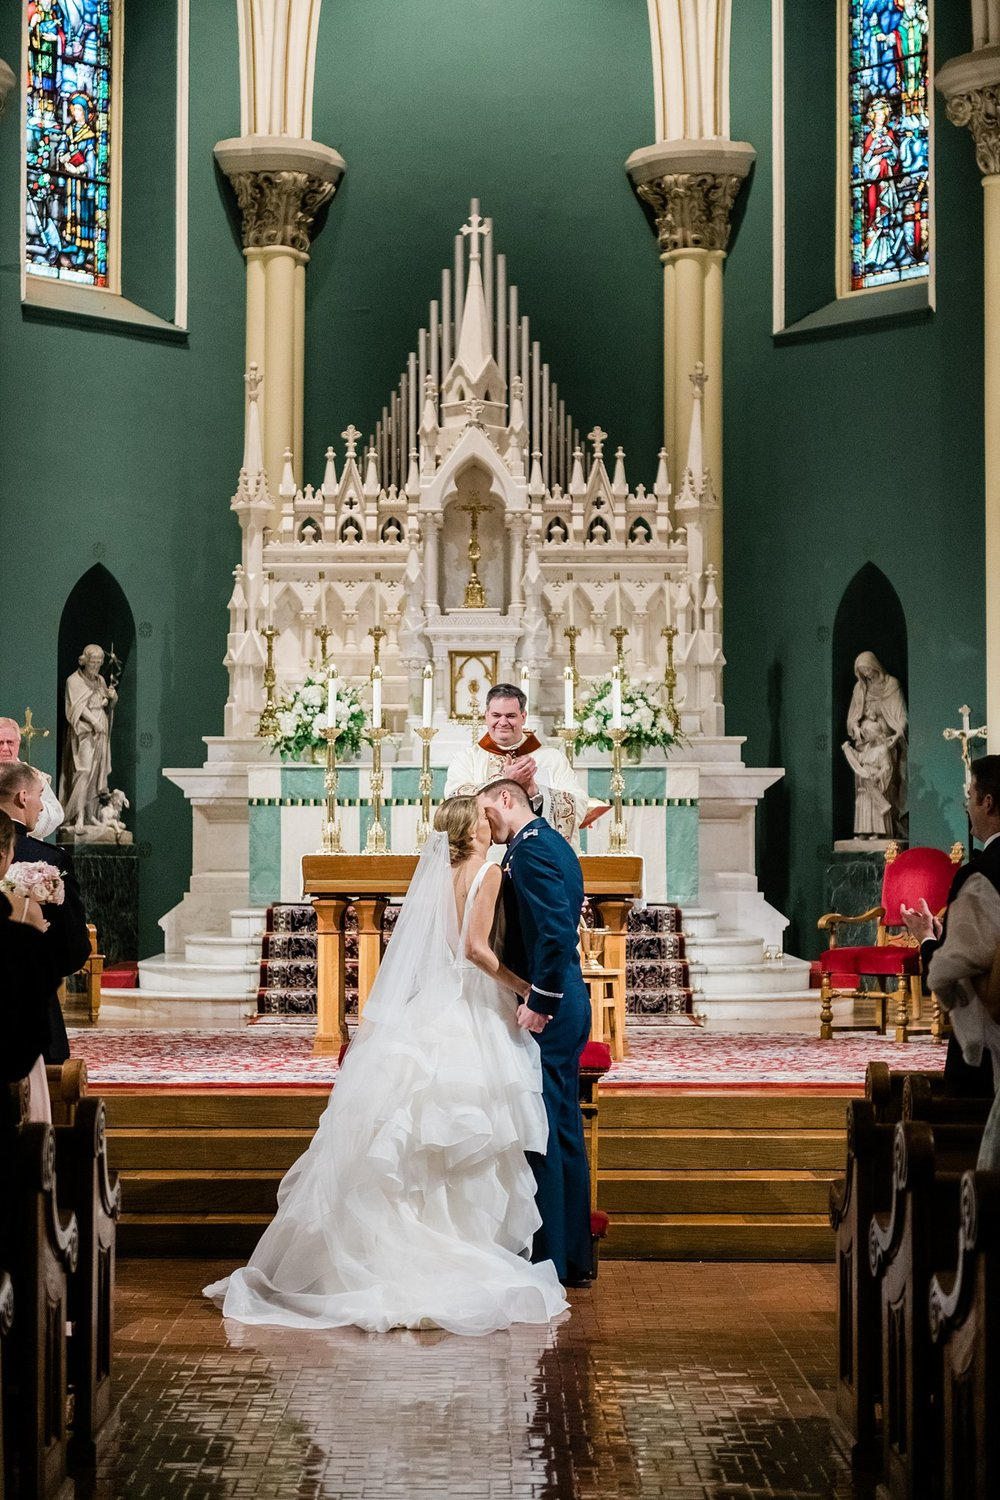 BASILICA-OF-ST-JOHN-THE-BAPTIST-CANTON-WEDDING-PHOTOGRAPHER_0039.jpg